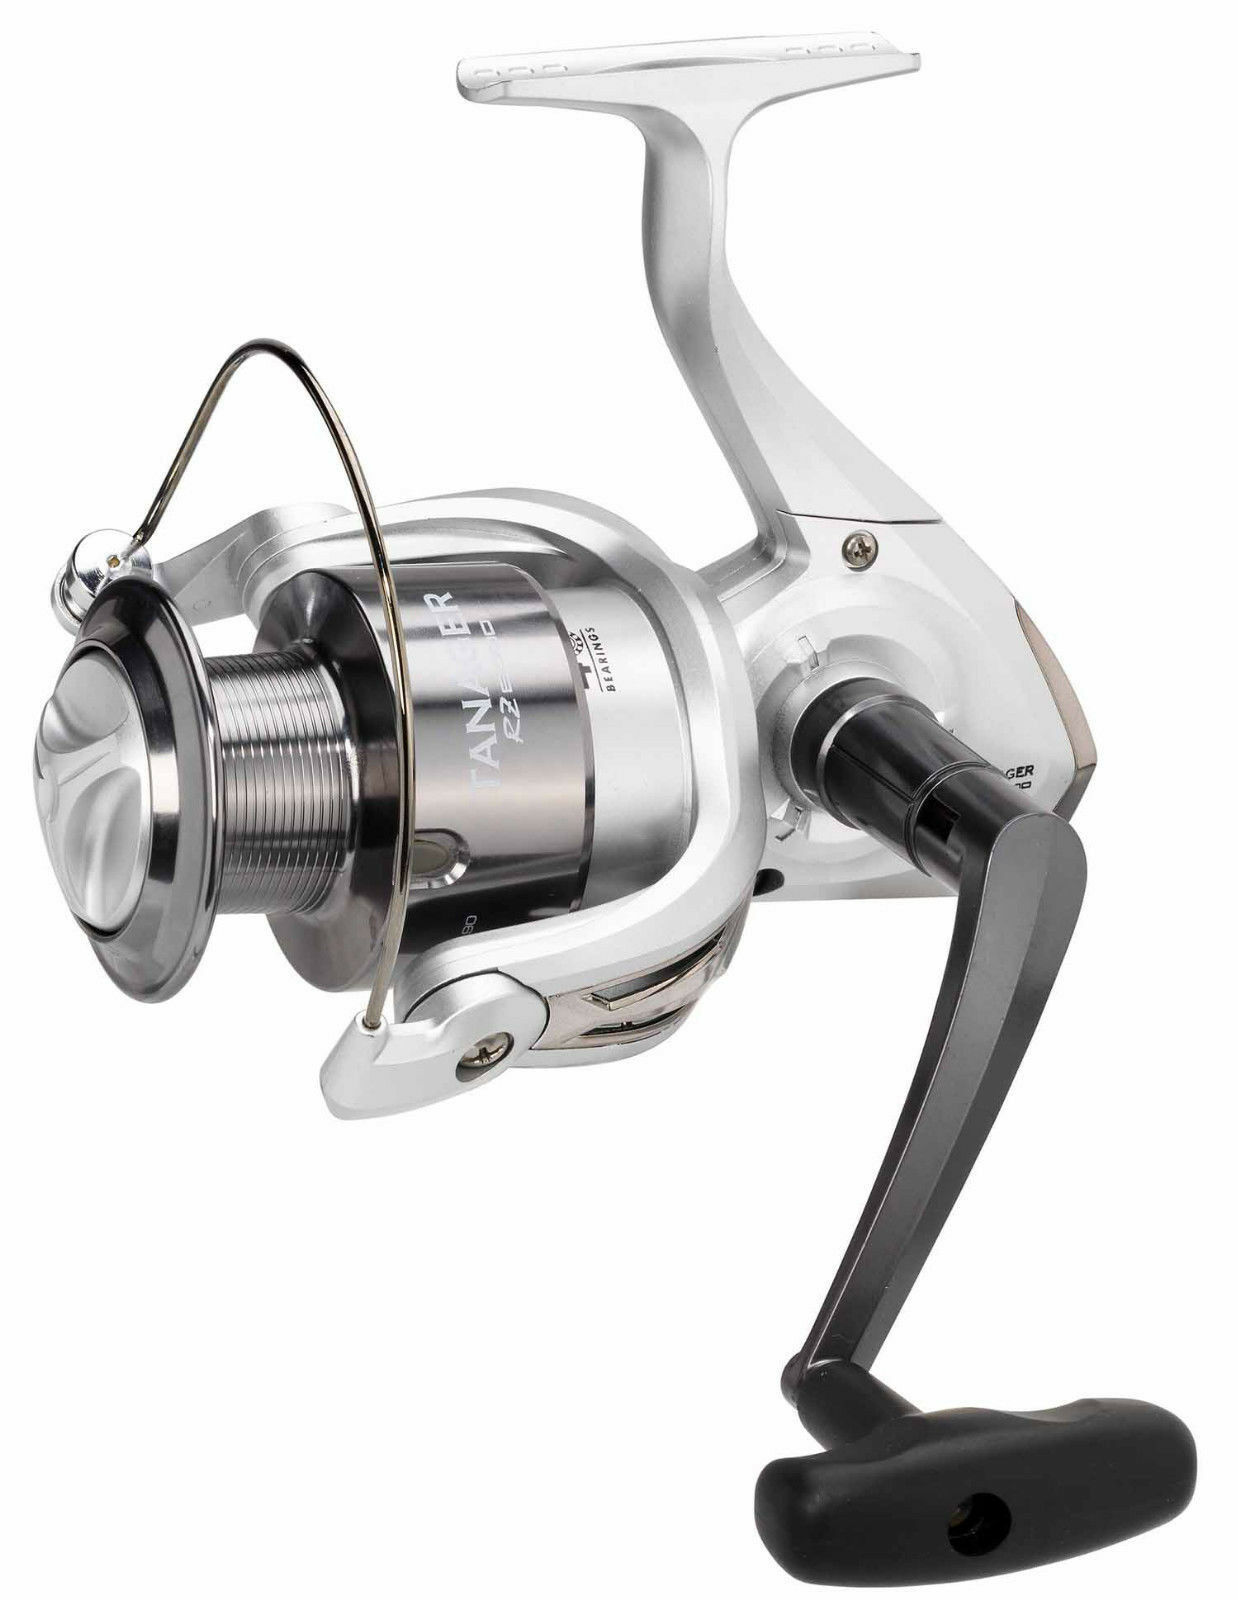 MITCHELL TANAGER RZ FD SPINNING MATCH FISHING REEL W  SPARE SPOOL 2 4 5 6000